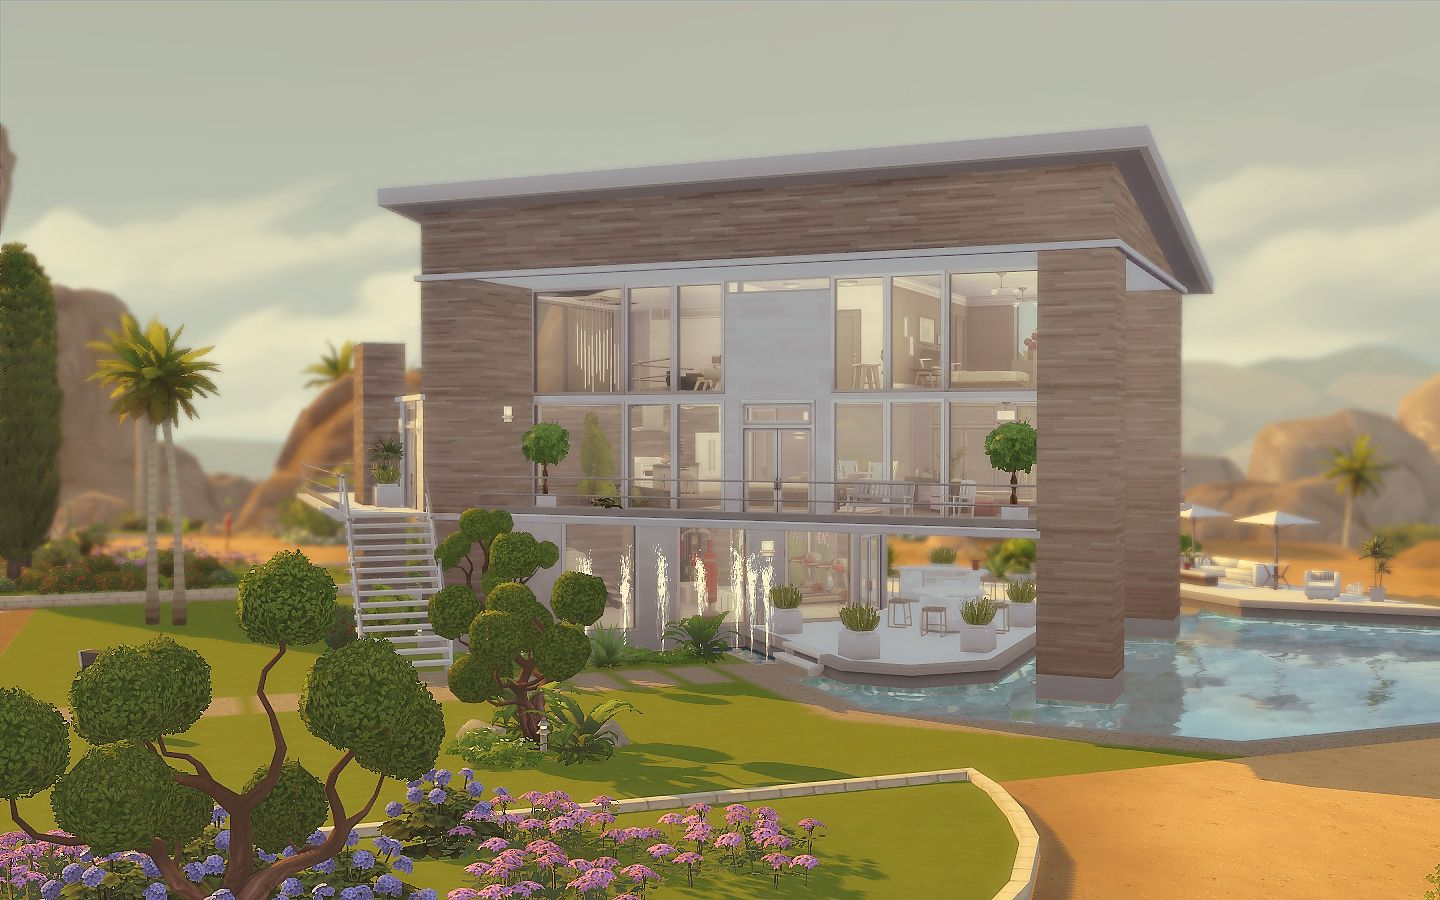 Via Sims House 19 The Sims 4 Favorites Pinterest Sims